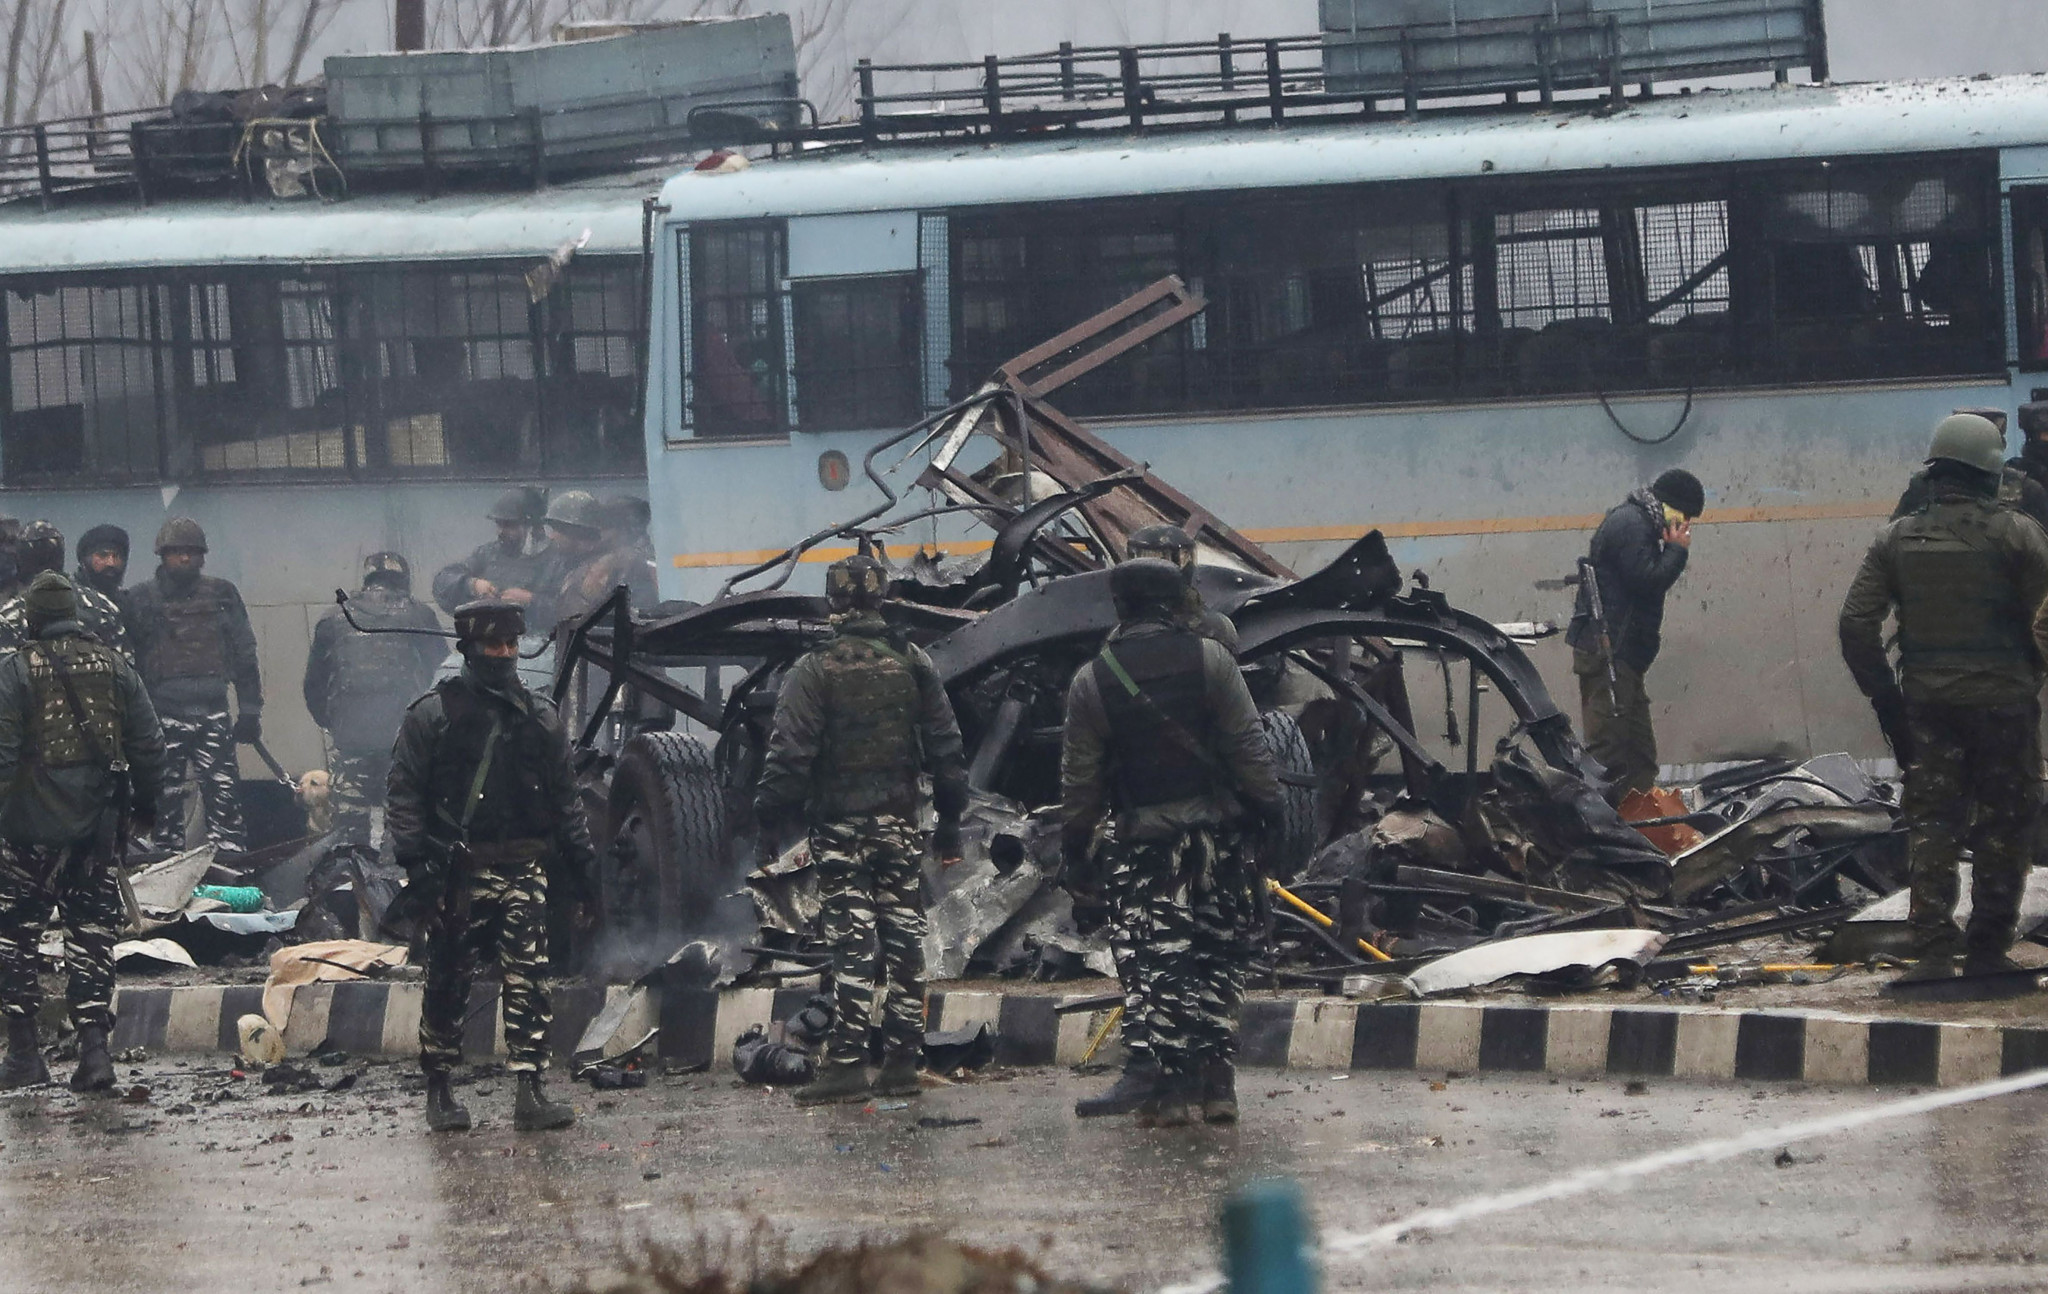 A terrorist attack in Pulwama, which a Pakistan group claimed responsibility for, has led to doubts over whether competitors from that country can take part in the ISSF World Cup in New Delhi ©Getty Images